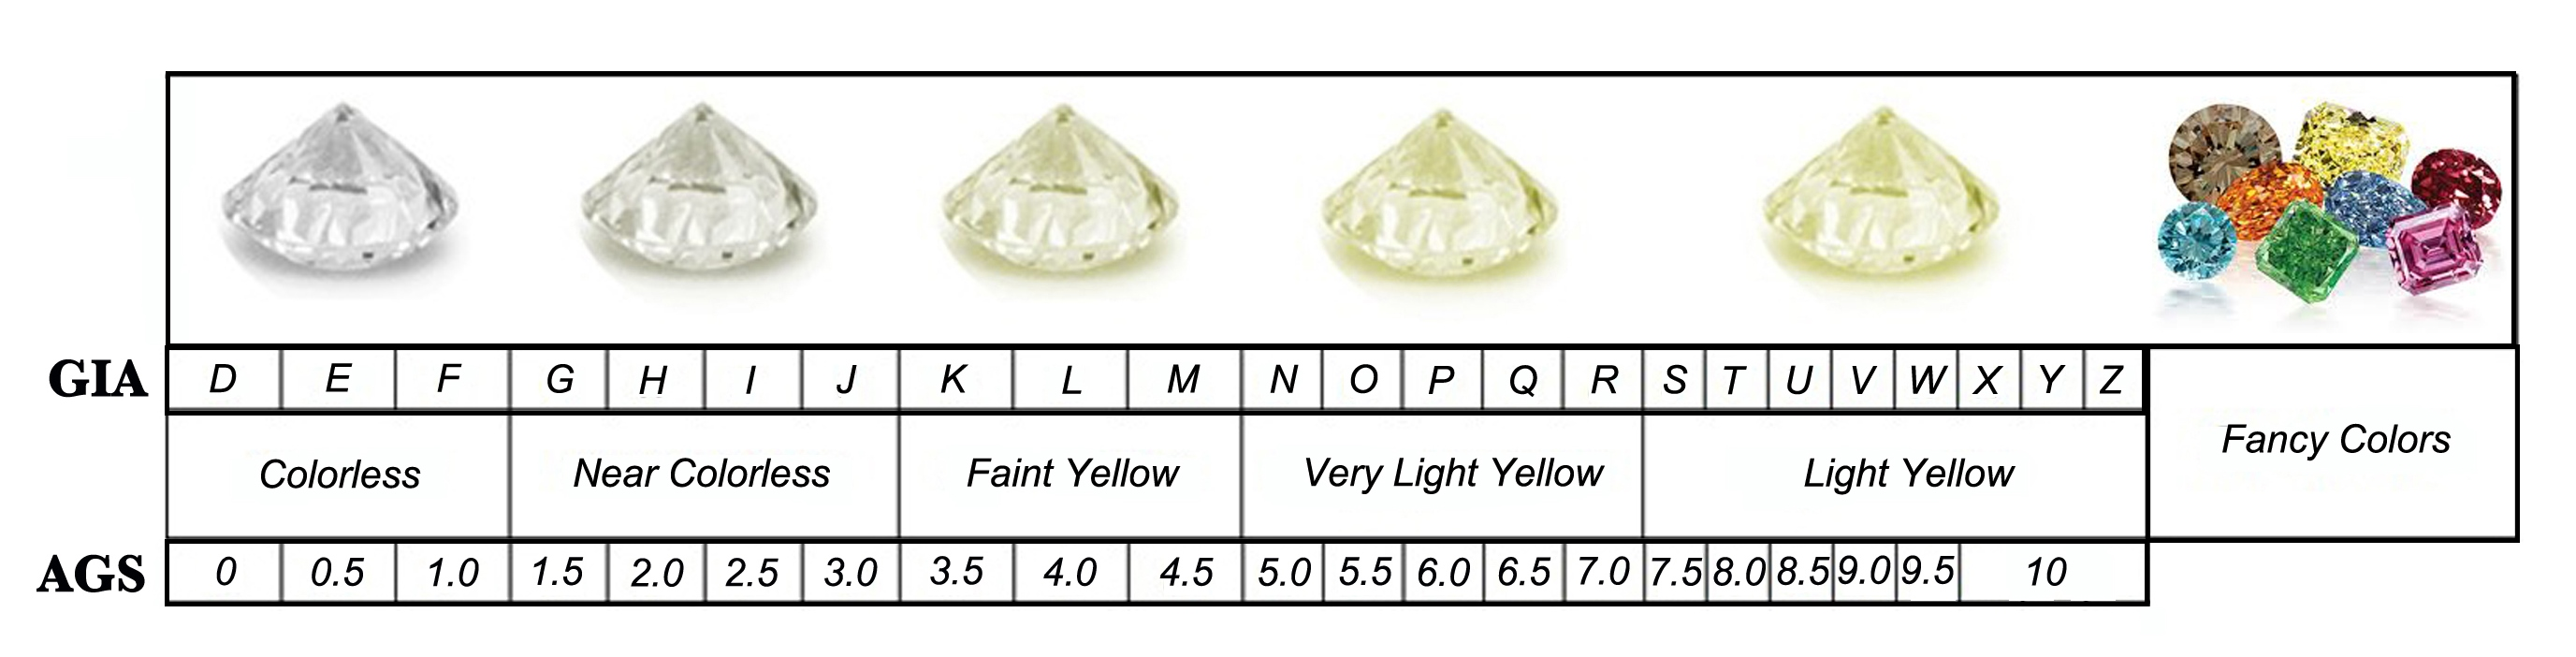 grading diamond gia shape en about us blog shapes